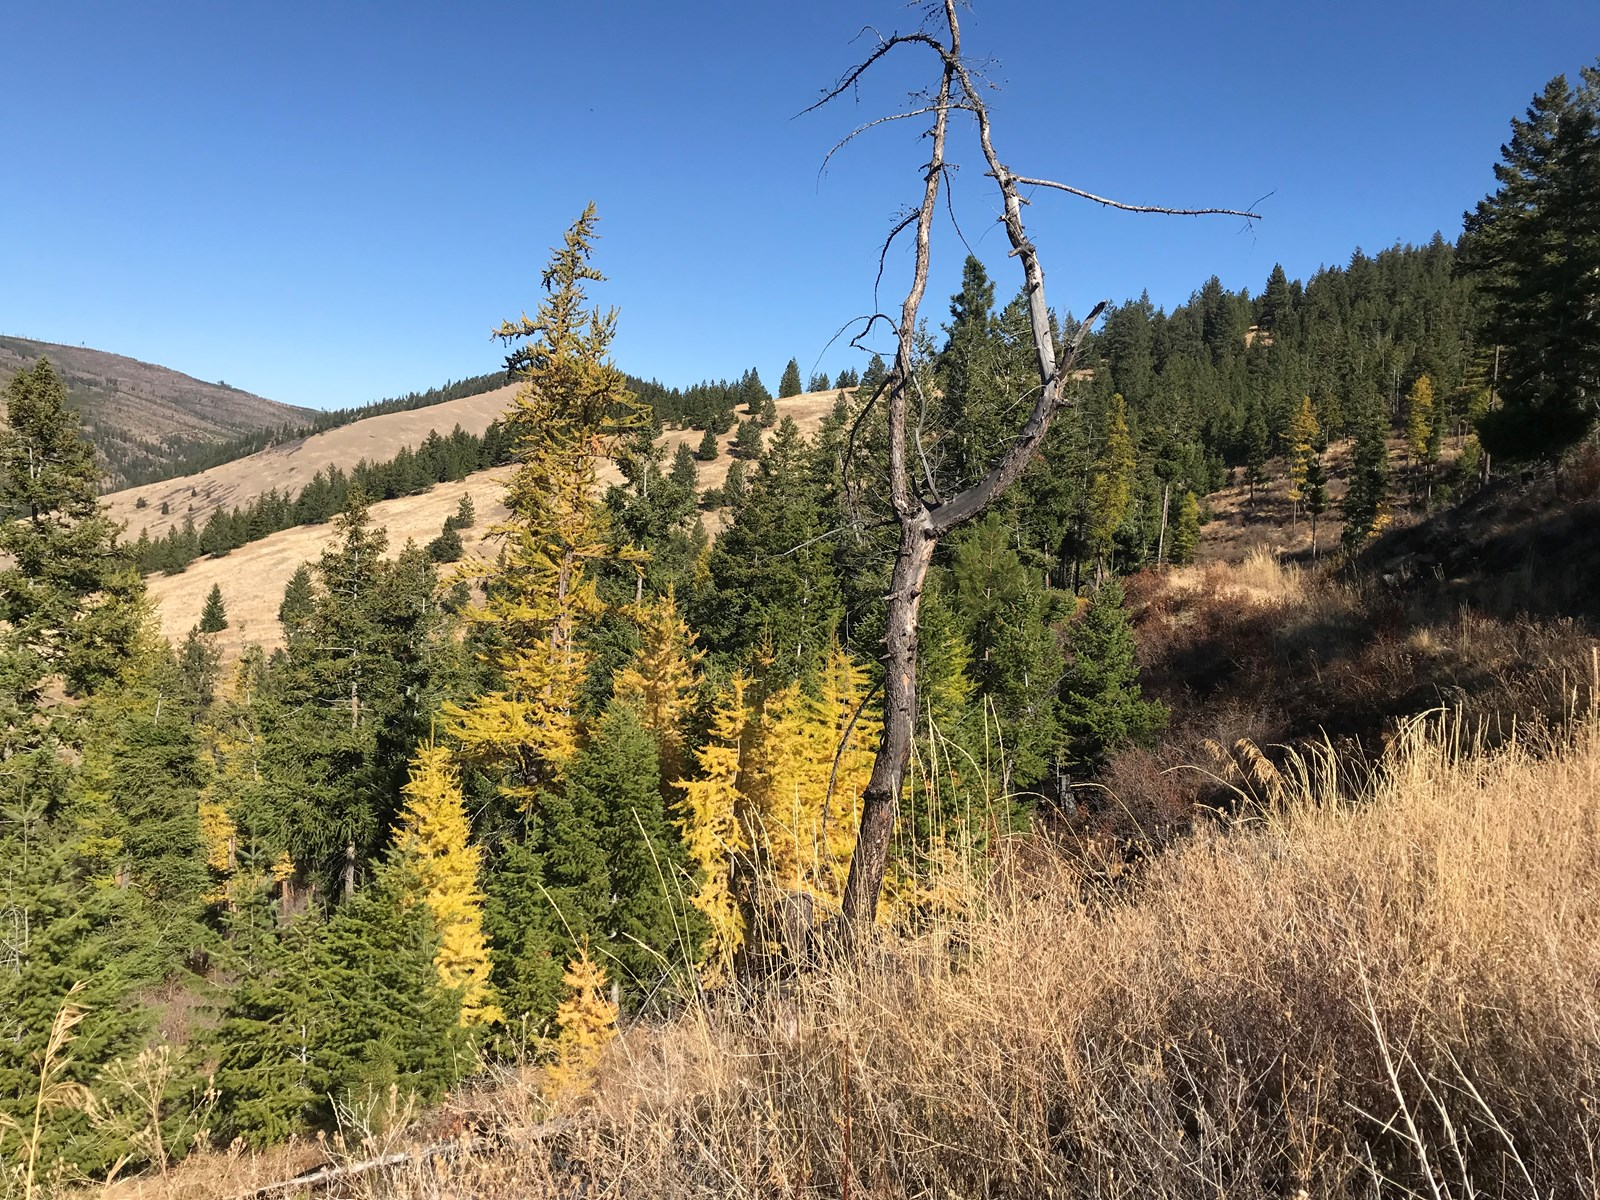 LAND FOR SALE IN PARADISE MT